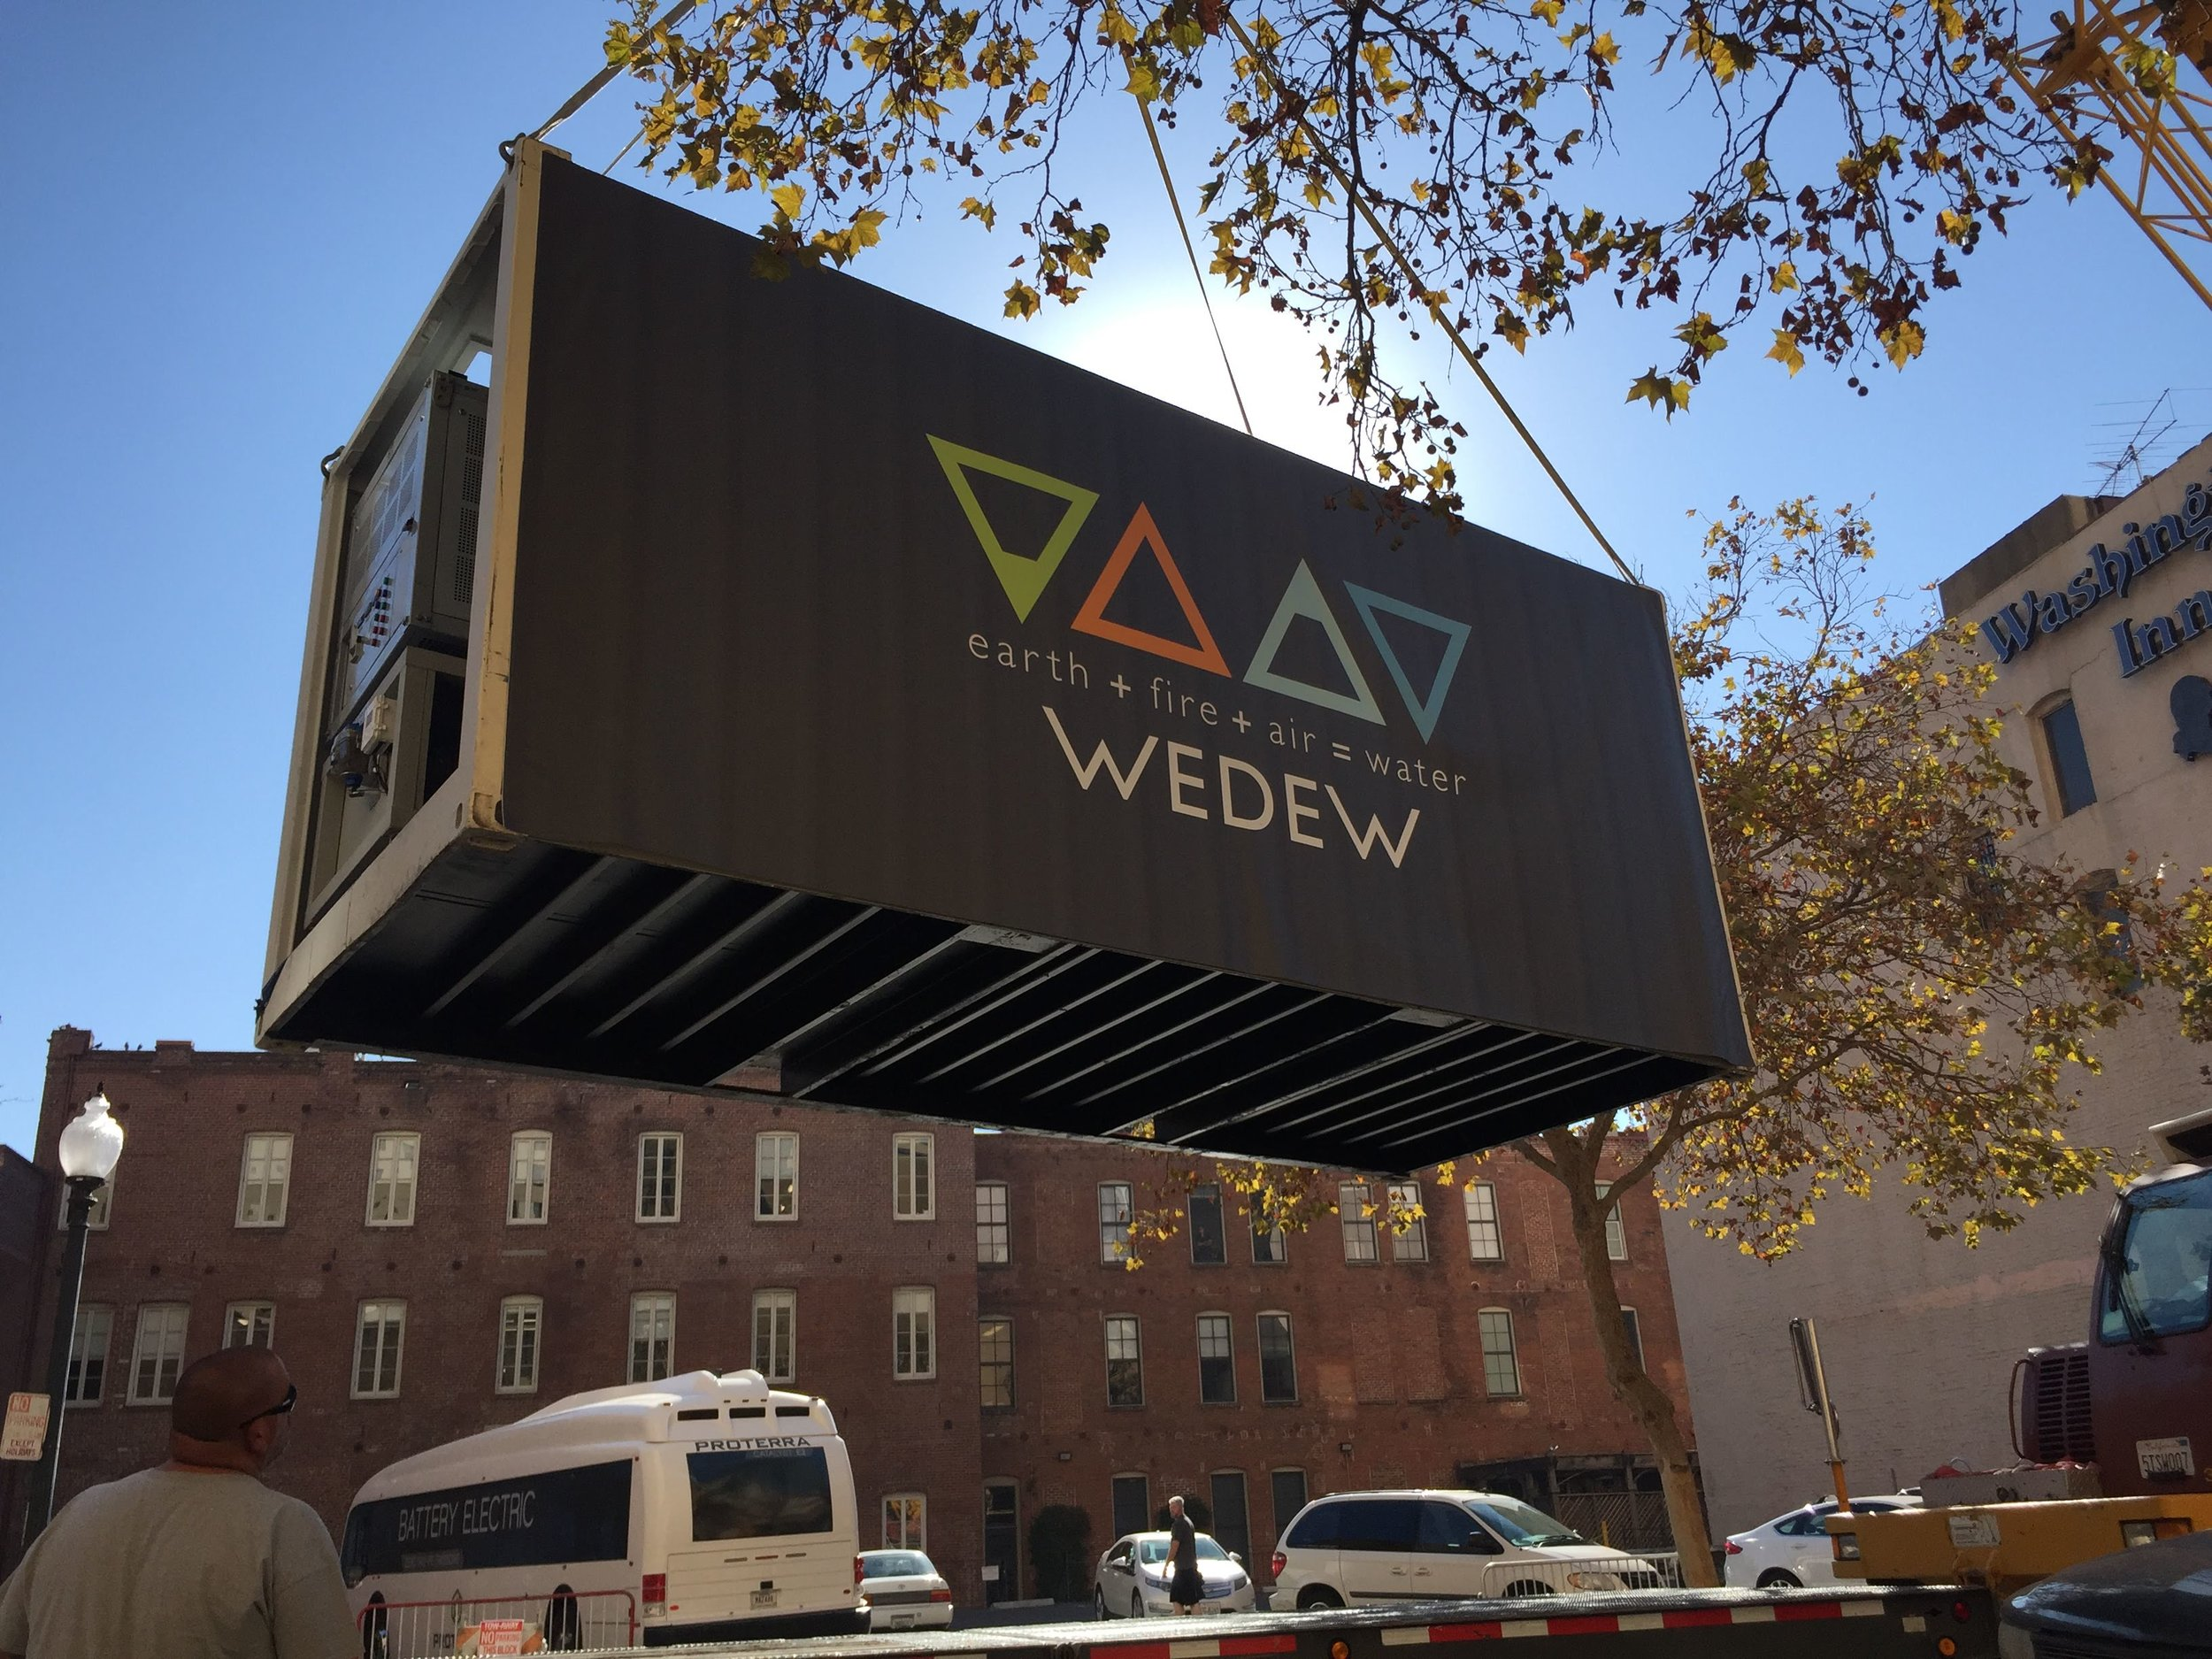 WEDEW landed at Verge18 in the San Francisco Bay Area, where it made water and charged the conference's microgrid.